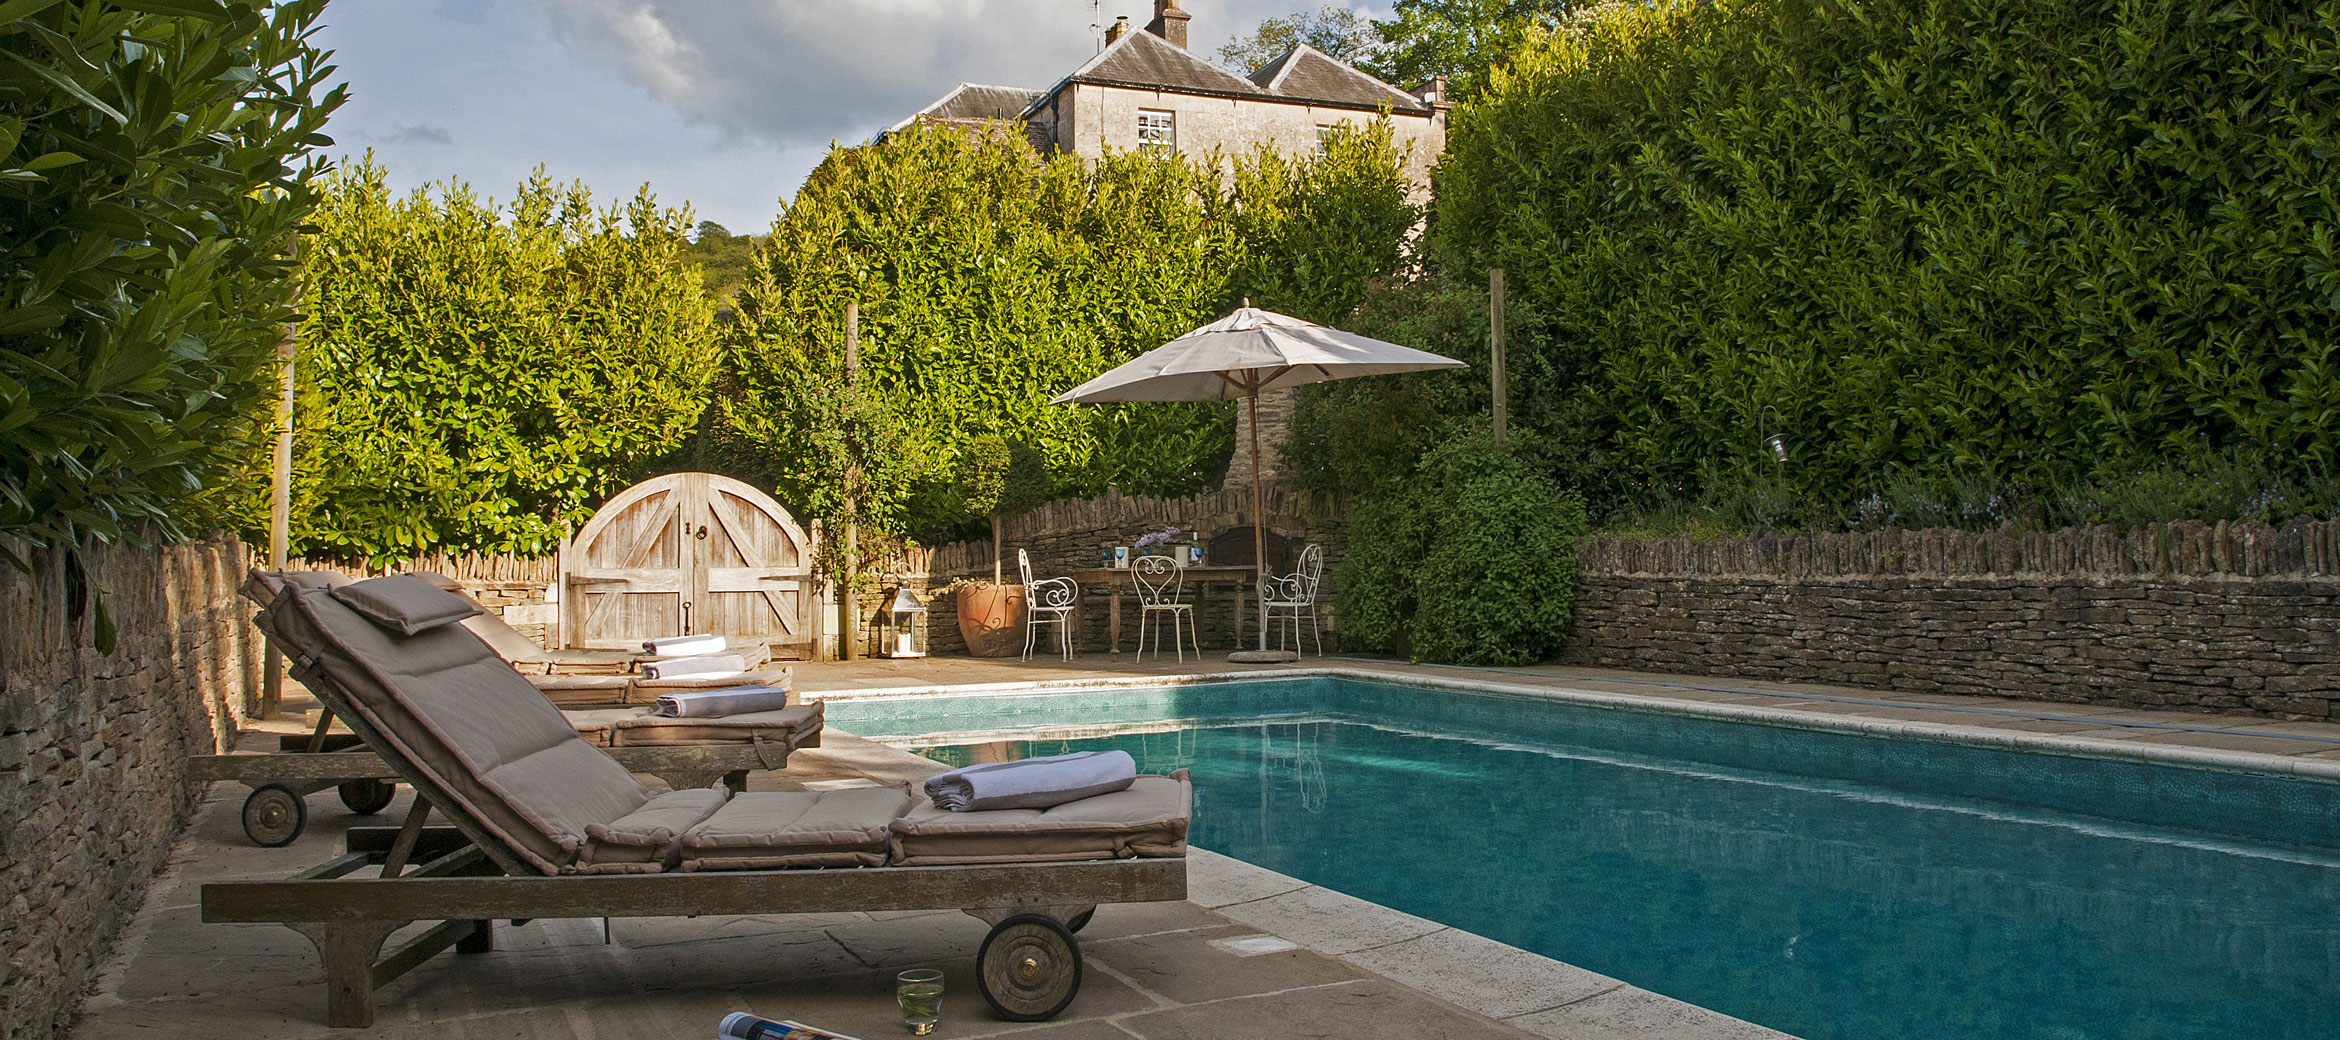 Luxury Cotswold Self Catered Holiday Cottage Rental Luxury Cotswold Rentals